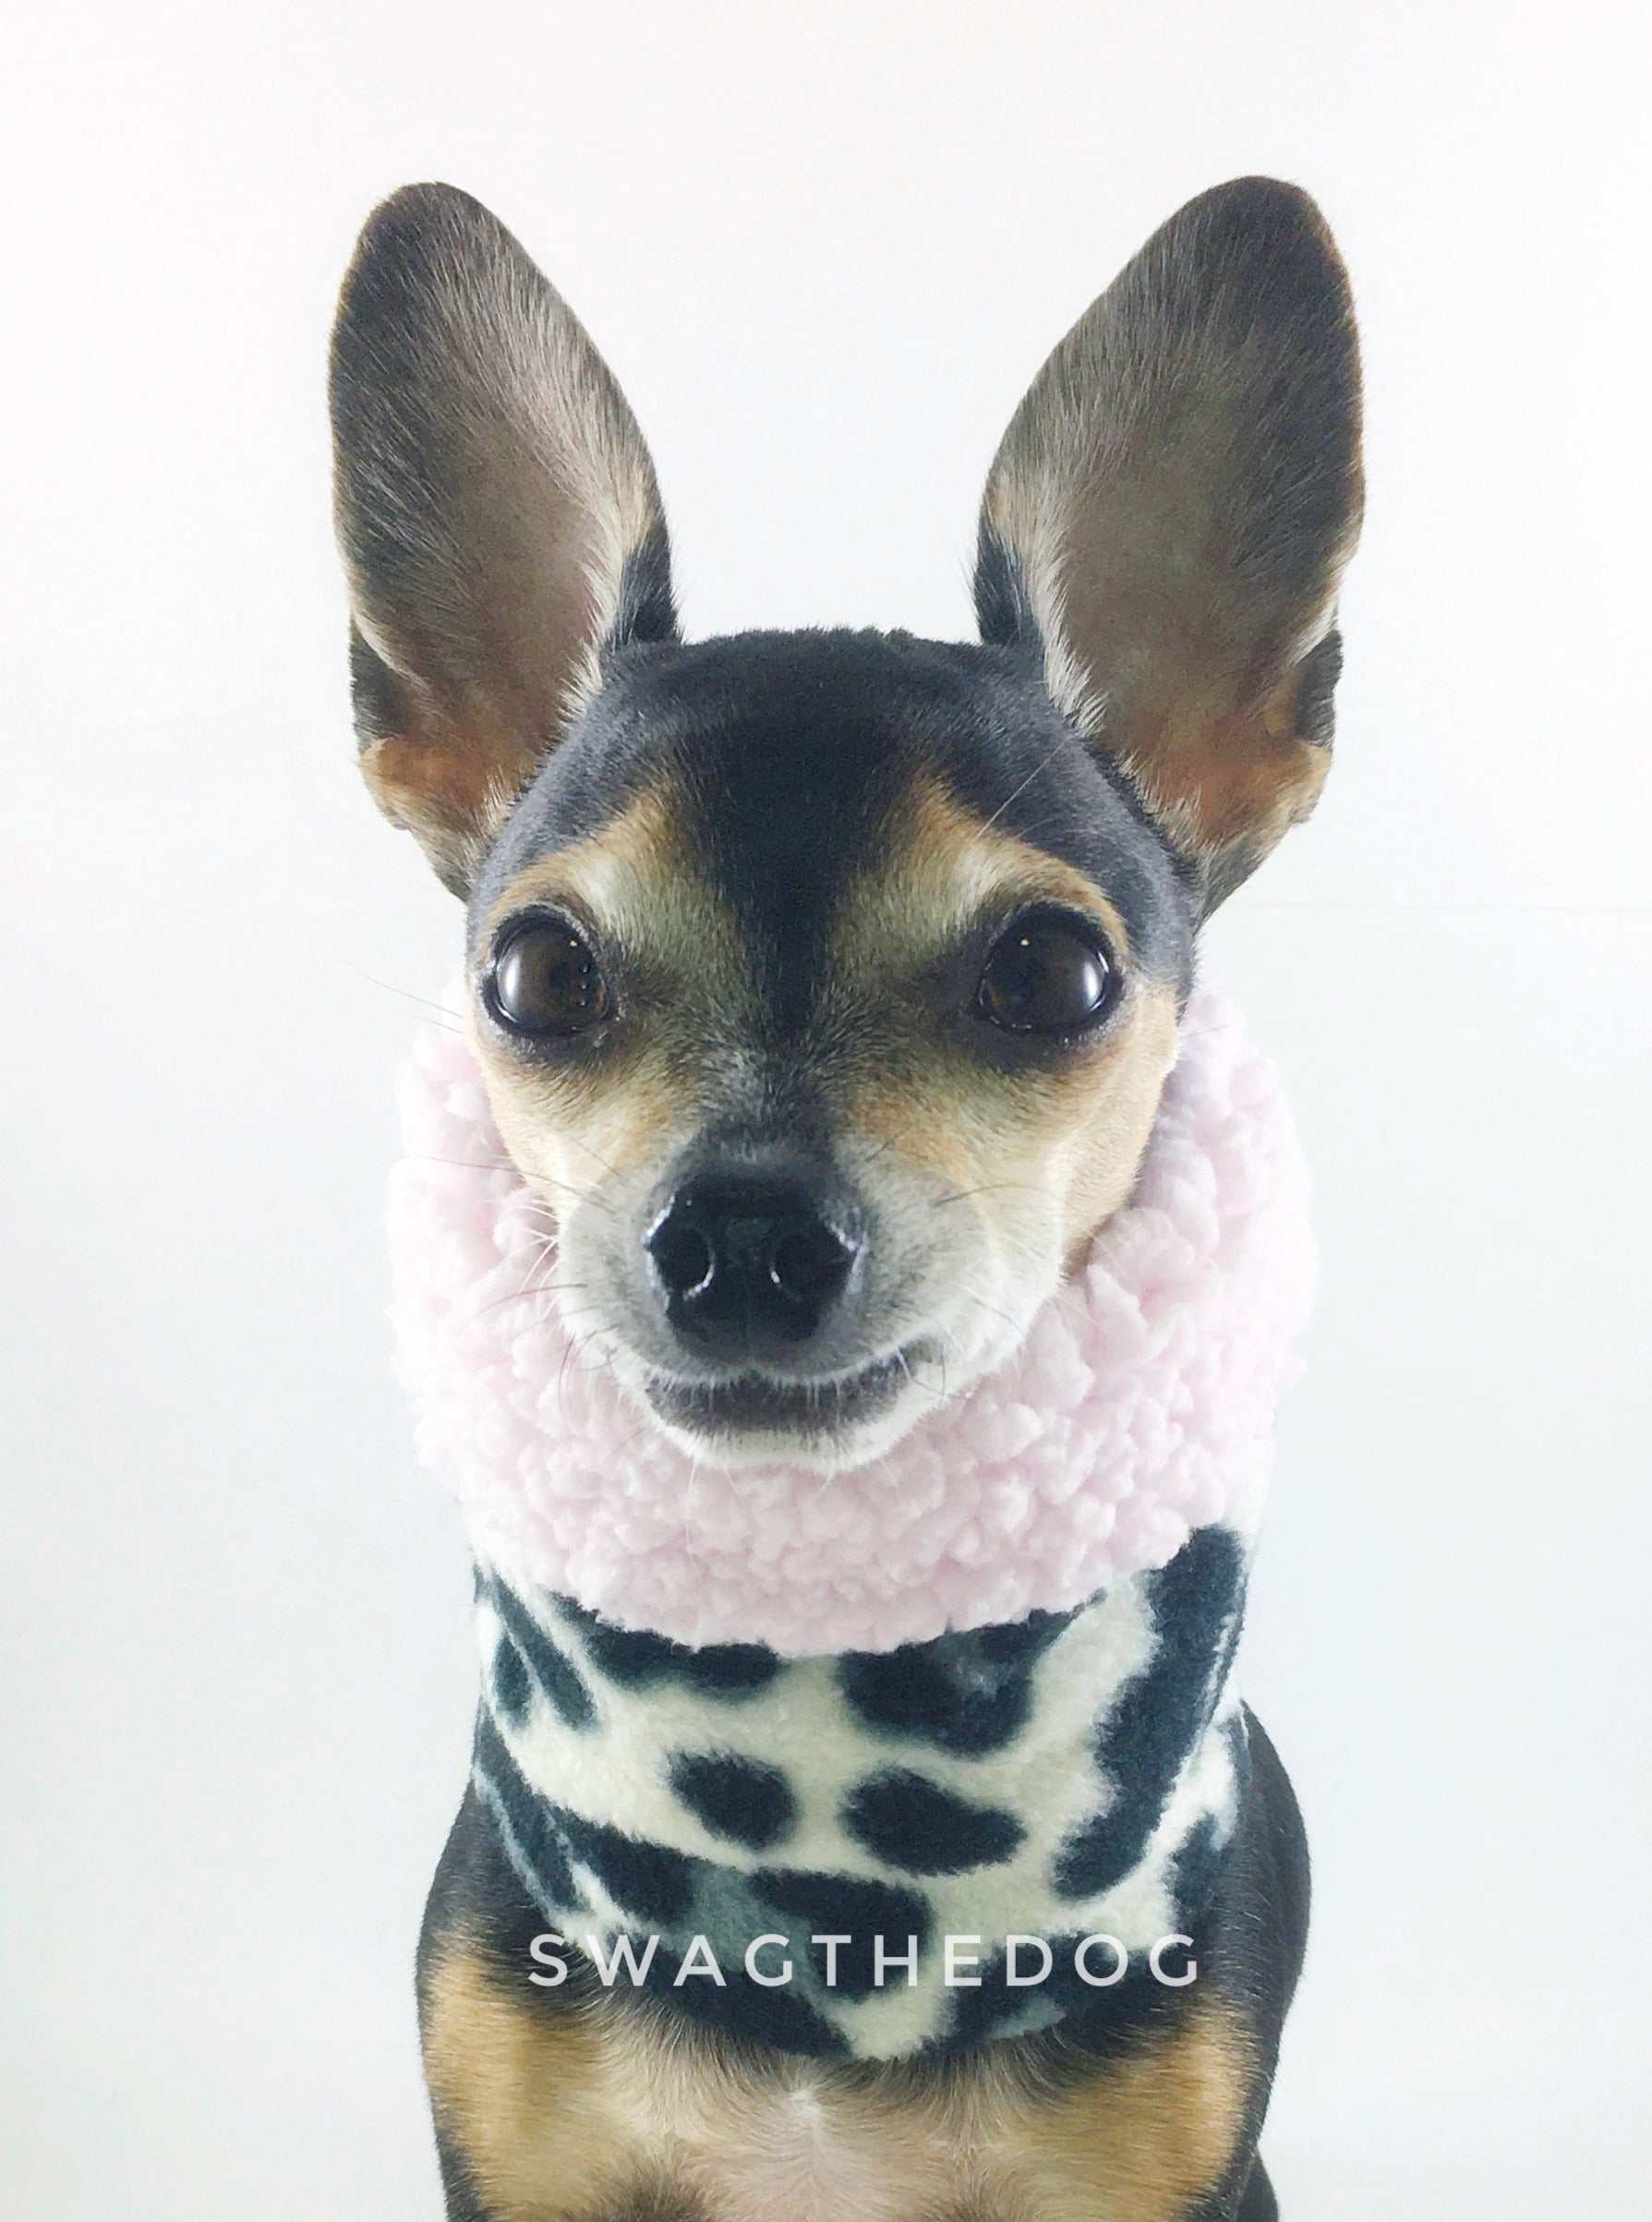 Gray Snow Leopard Swagsnood - Close-up Face View of Hugo, Cute Chihuahua Dog Wearing gray snow leopard print fleece dog snood. Pink sherpa rolled up 1/3 of the snood and 2/3 with gray snow leopard print fleece